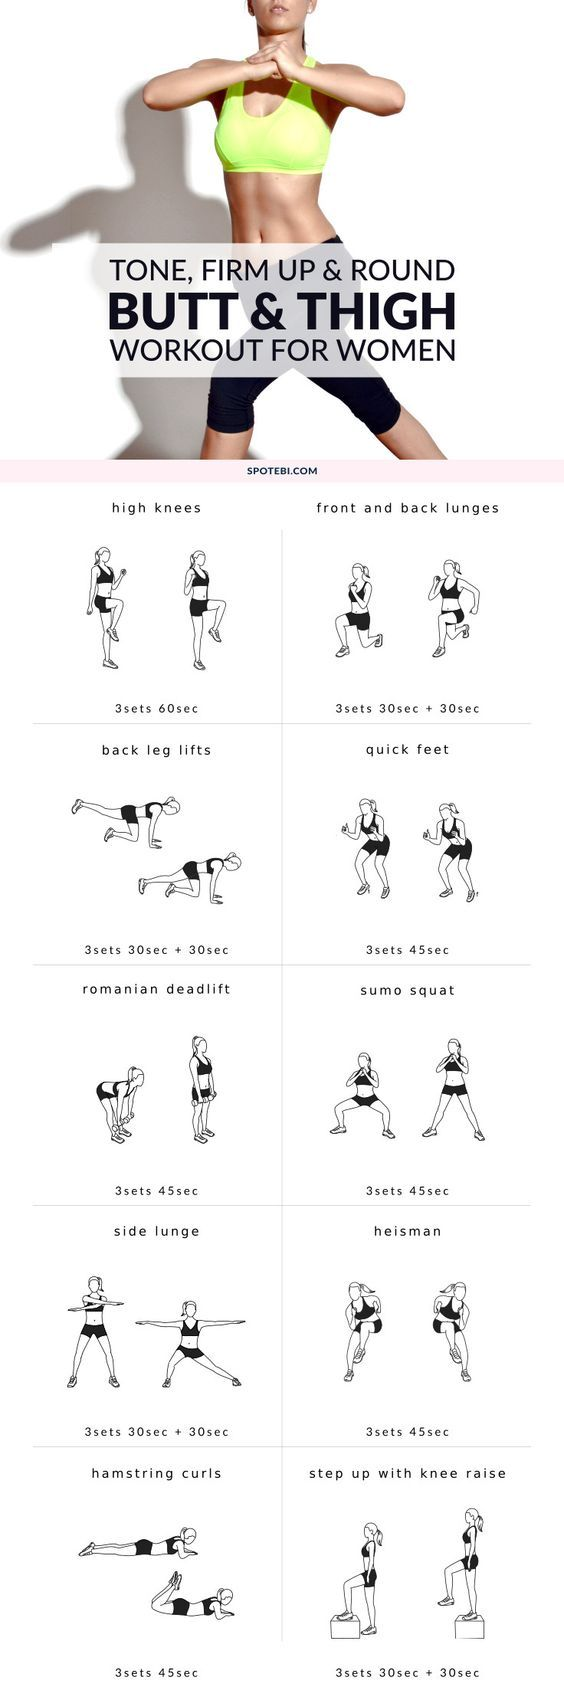 Butt and thigh workout for women plans